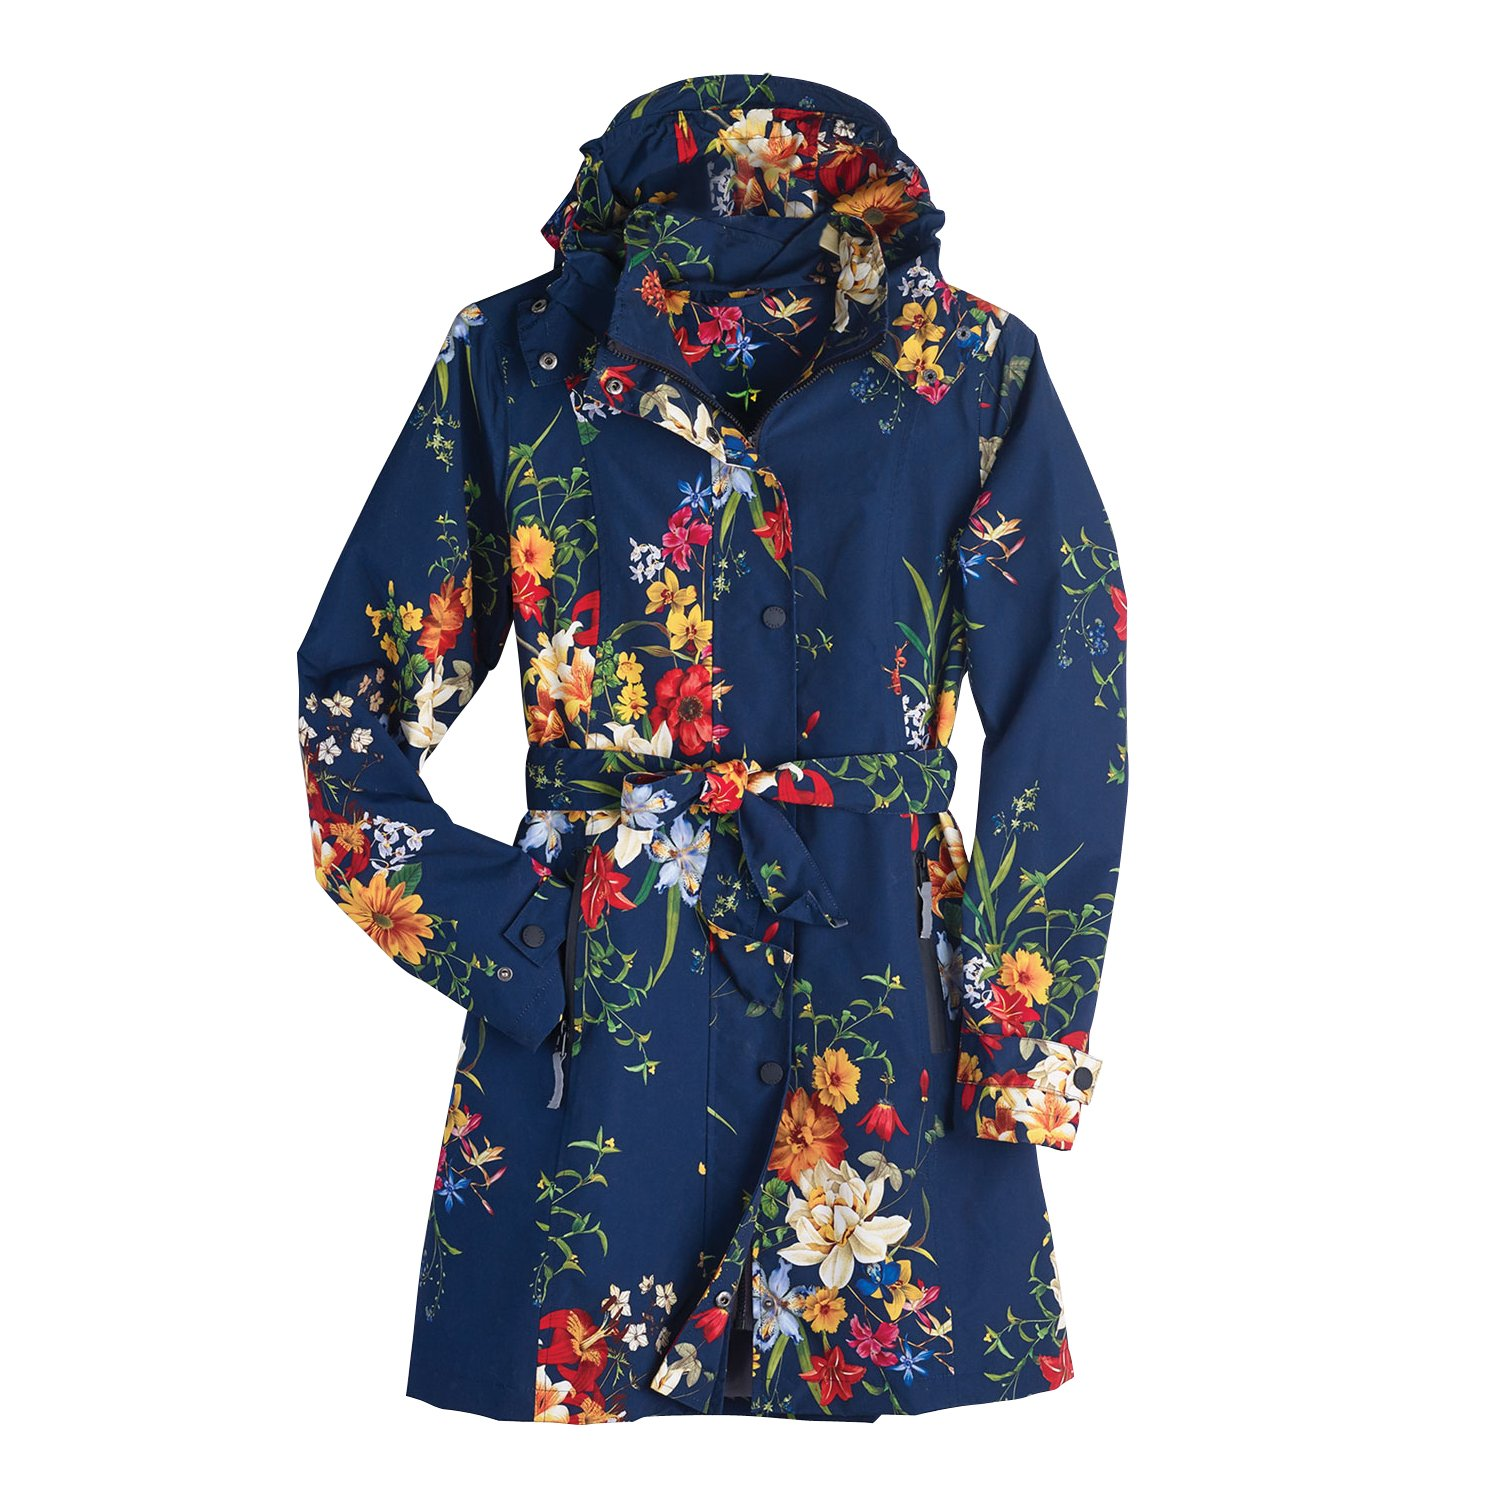 CATALOG CLASSICS Women's Floral Rain Jacket With Detachable Hood - Belted, Zip-Front Lined Coat - Size 10